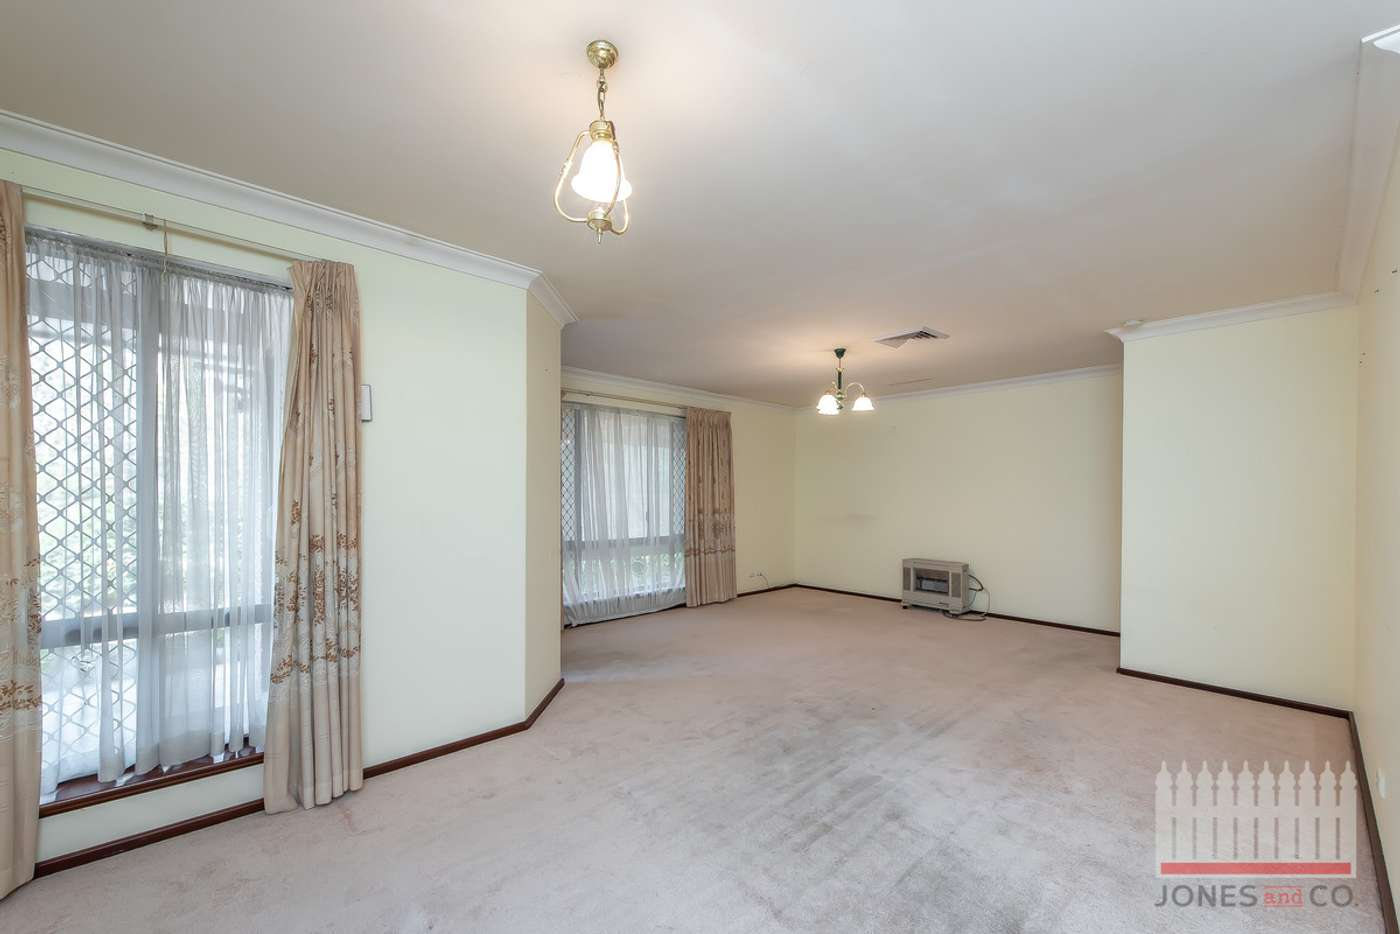 Sixth view of Homely villa listing, 6/117 Old Perth Road, Bassendean WA 6054